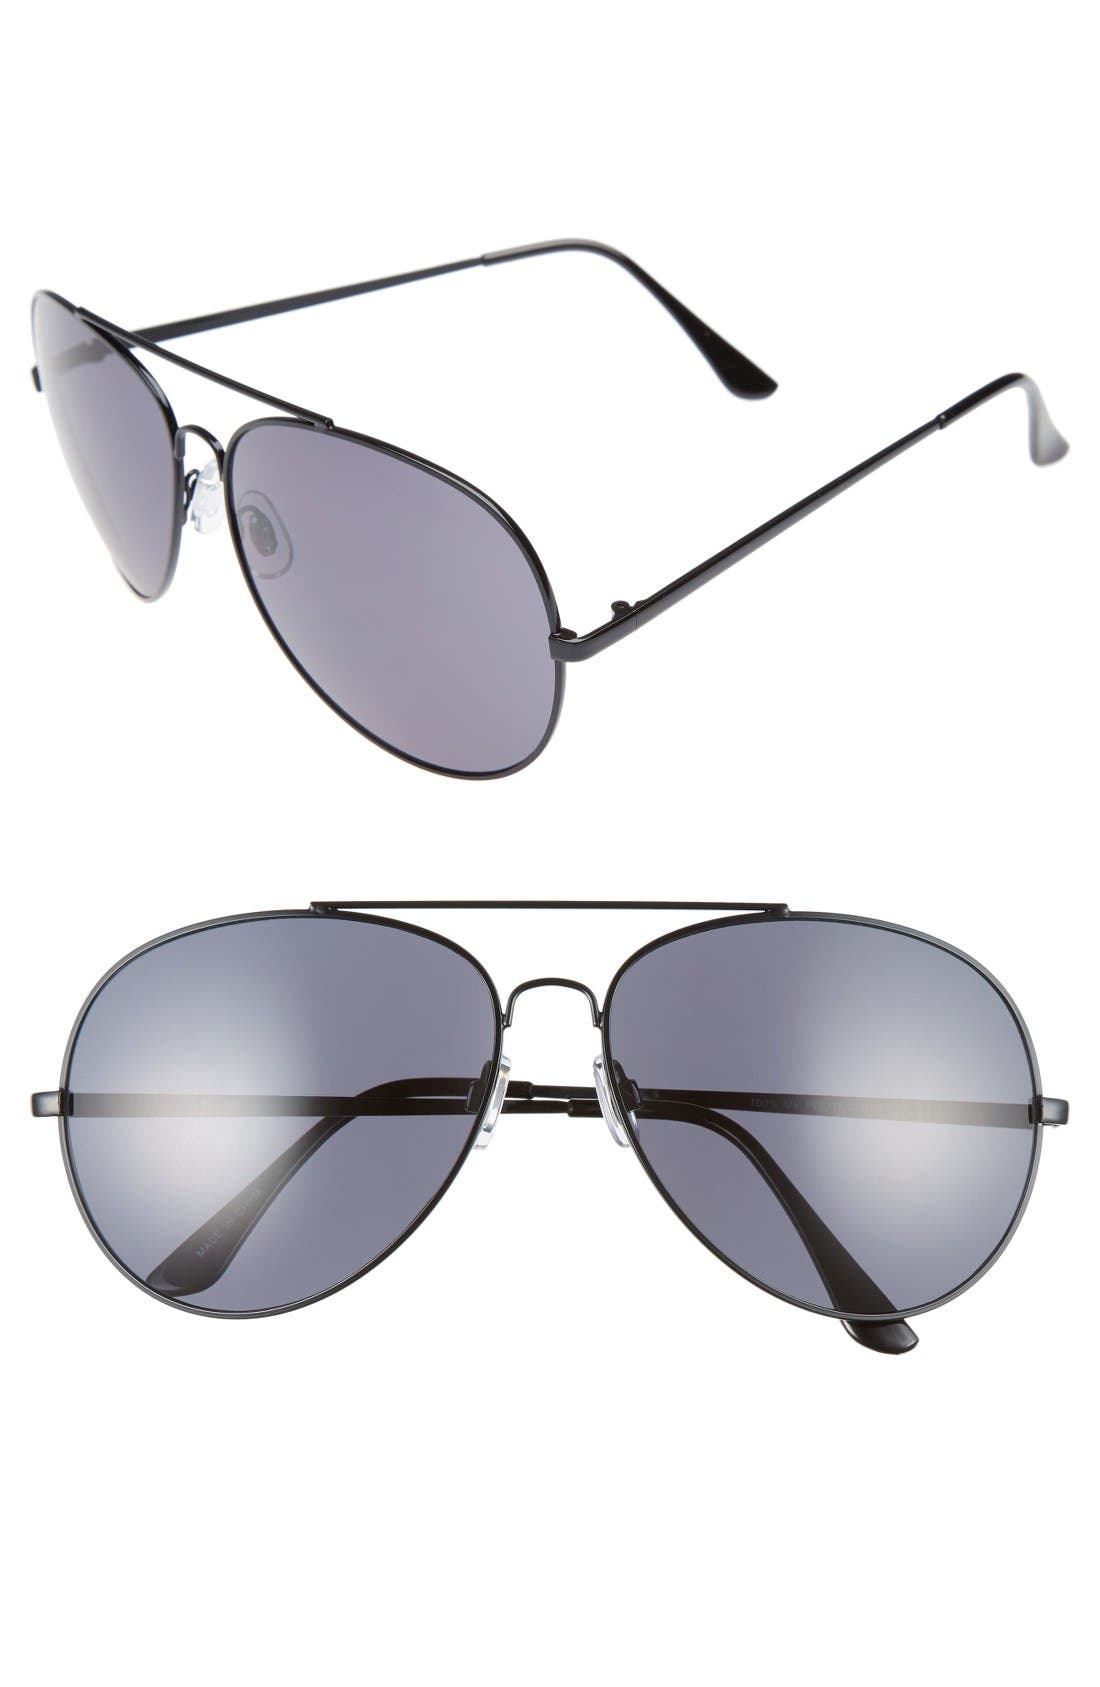 Alternate Image 1 Selected - BP. 65mm Oversize Aviator Sunglasses